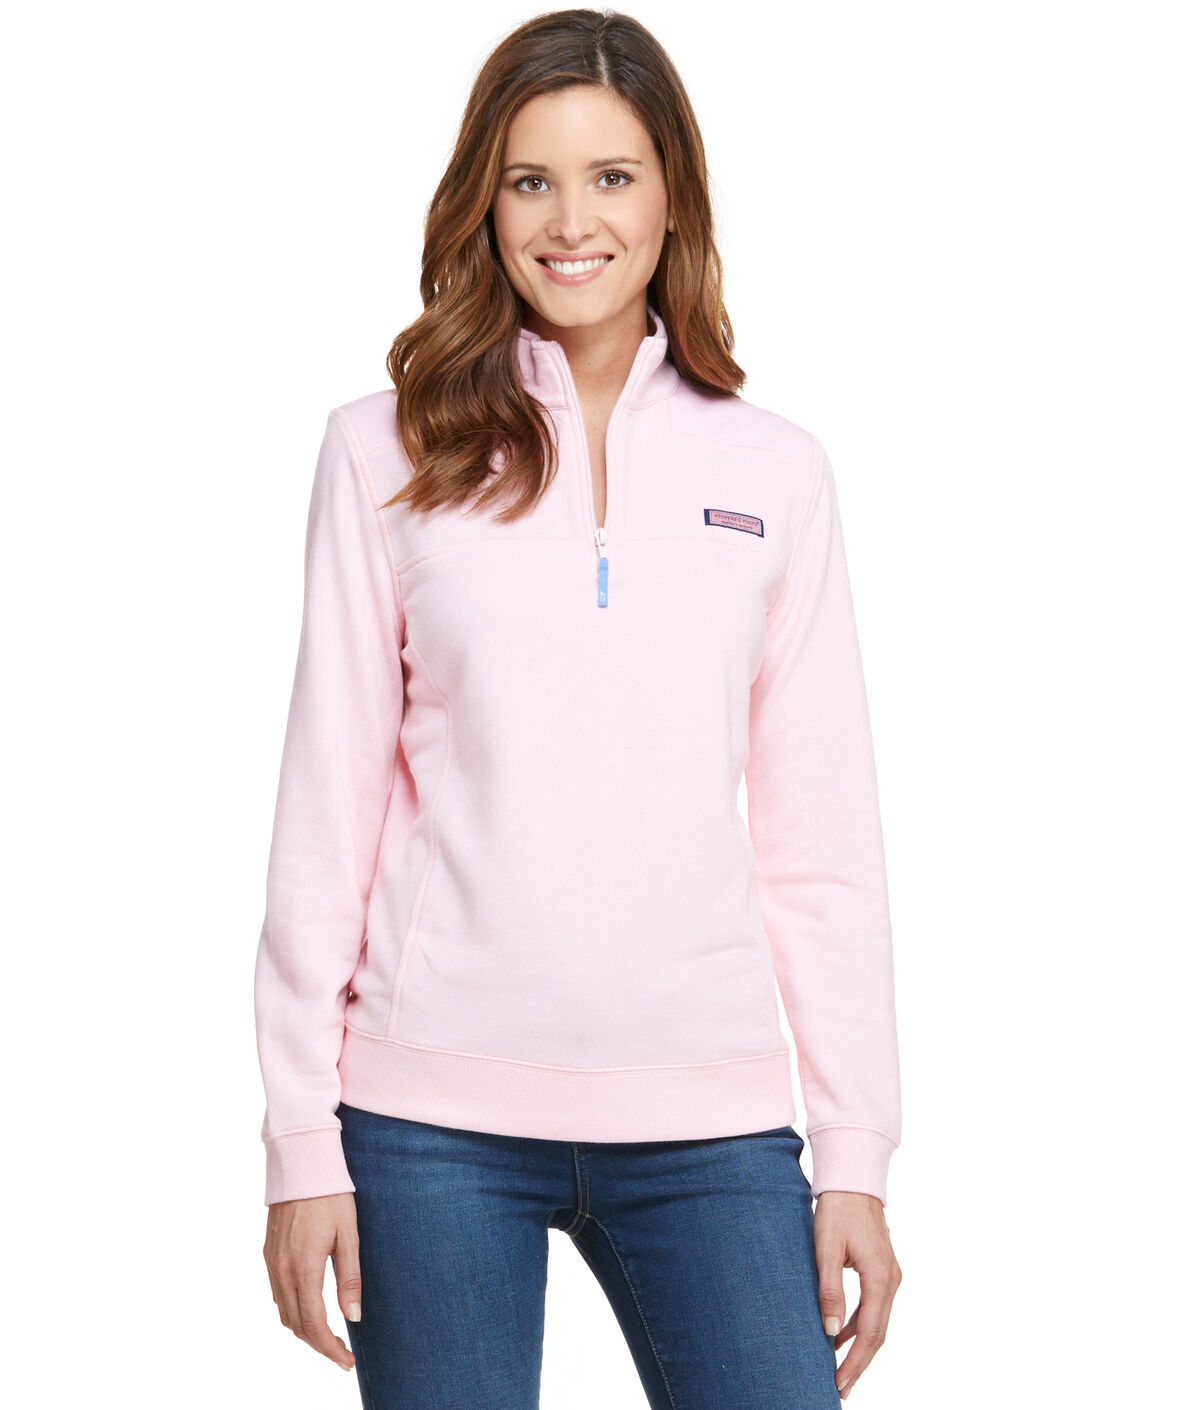 Shep Shirt - Shop Women's Quarter Zip & Pullovers At Vineyard Vines